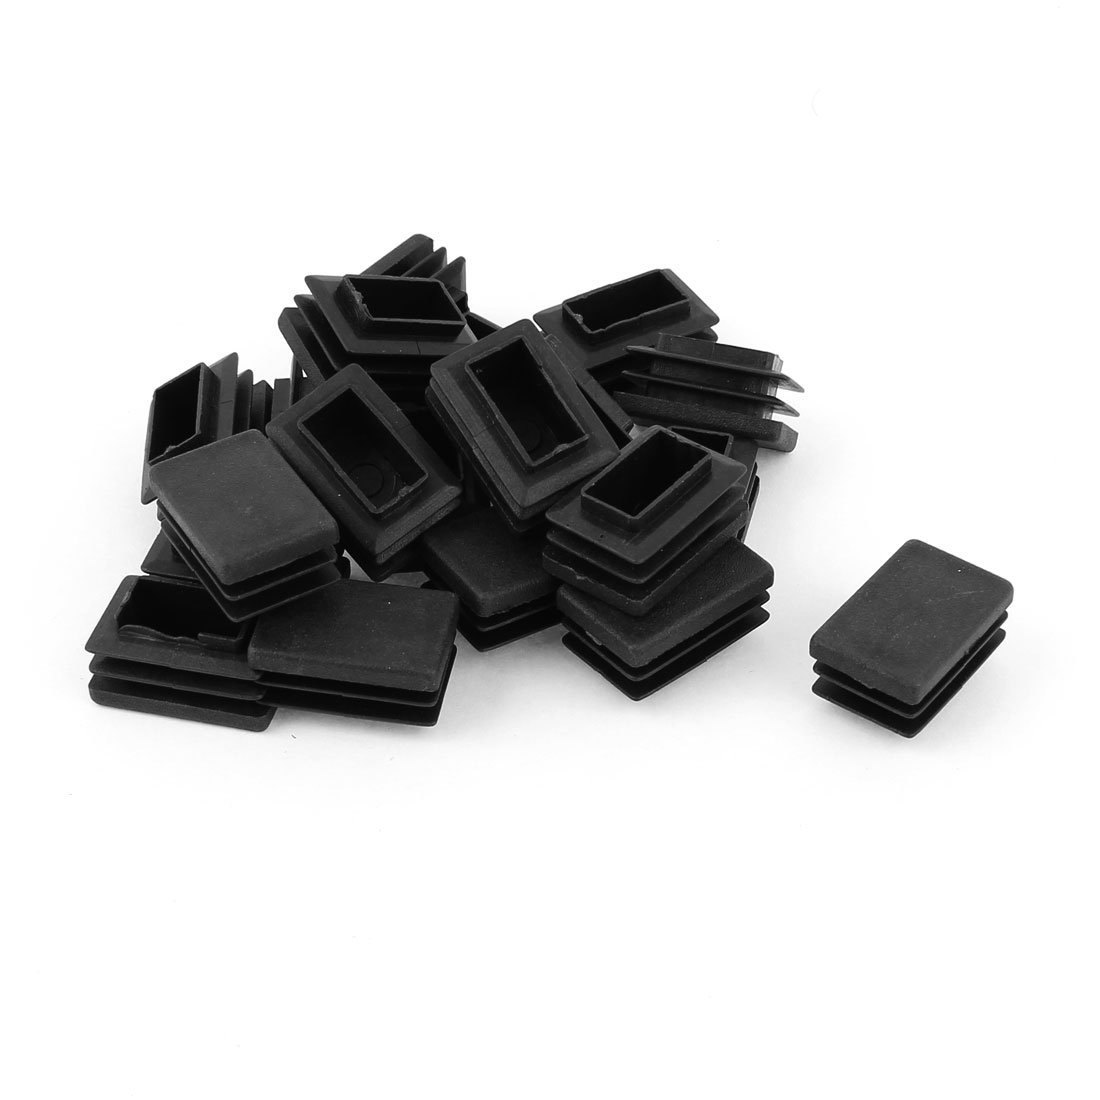 Promotion! 20 Pcs Professional  Black Plastic Rectangular End Cap 30mm X 20mm Threaded Pipe Tube Insert Rubber Feet